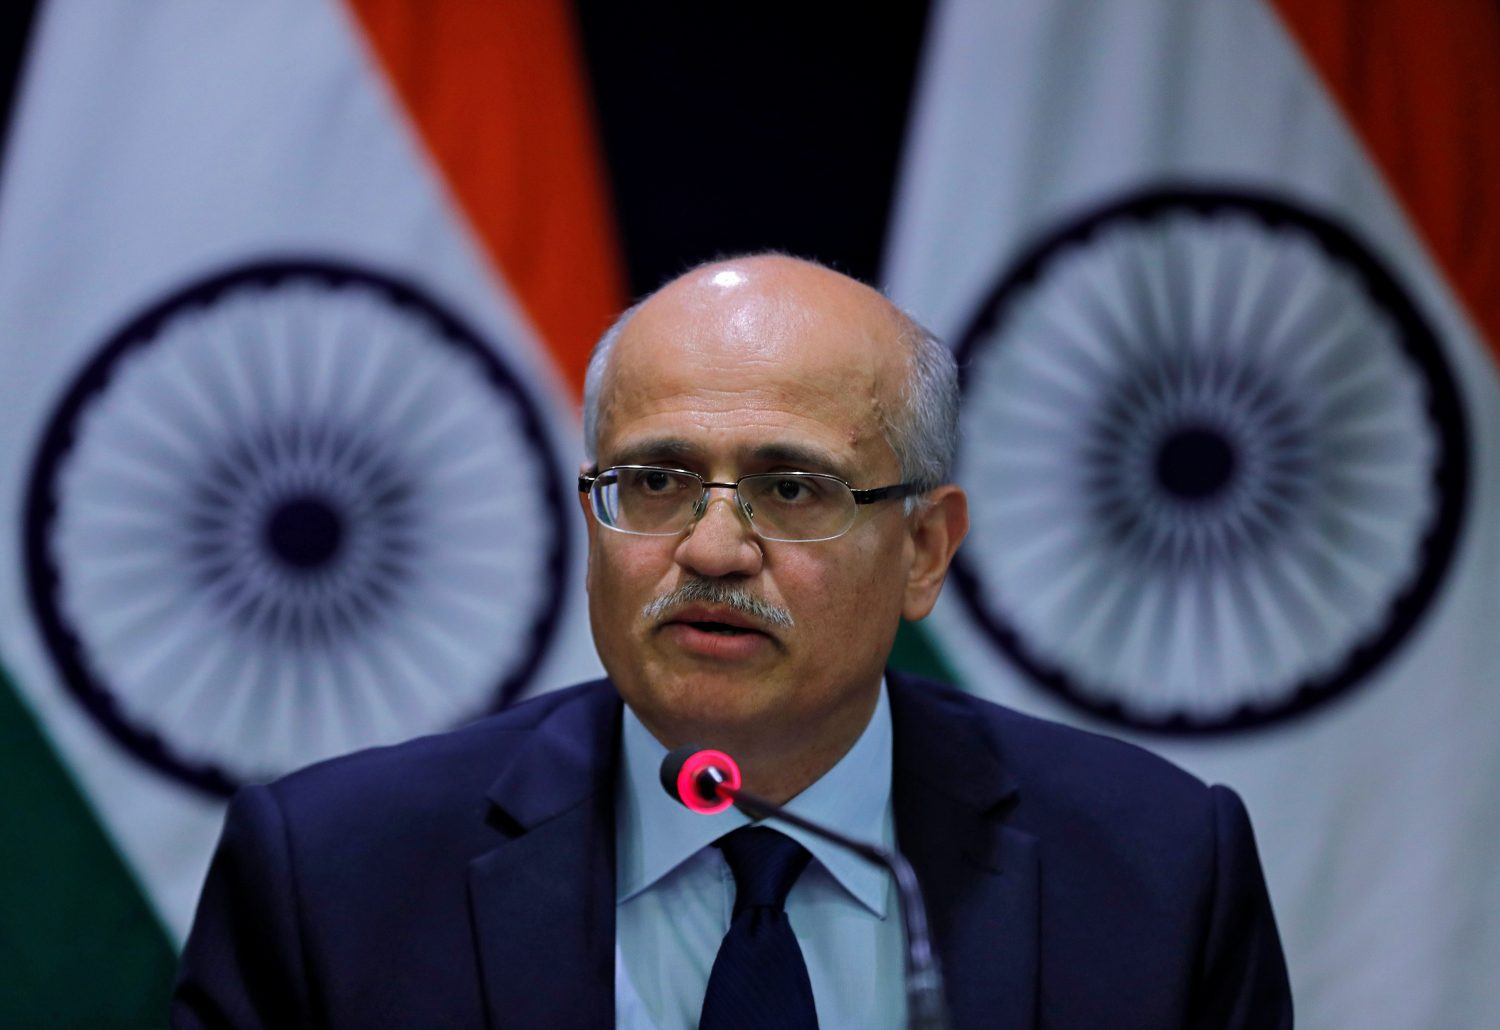 India's Foreign Secretary Vijay Gokhale speaks during a media briefing in New Delhi, India, February 26, 2019. REUTERS/Adnan Abidi